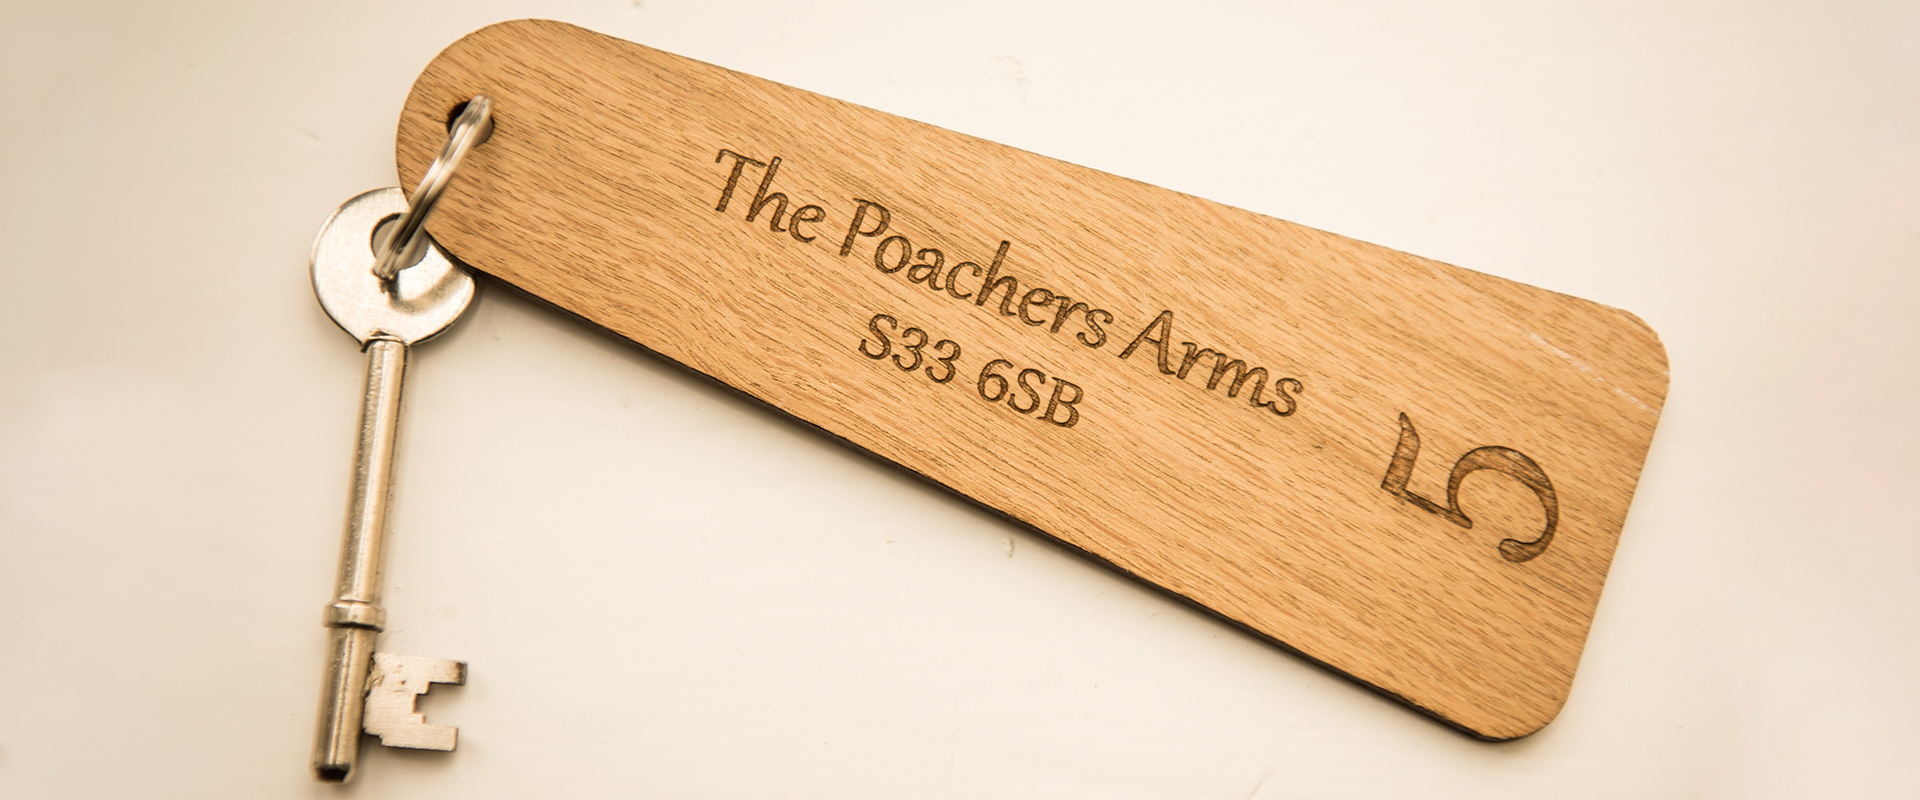 poachers arms midweek offer 1